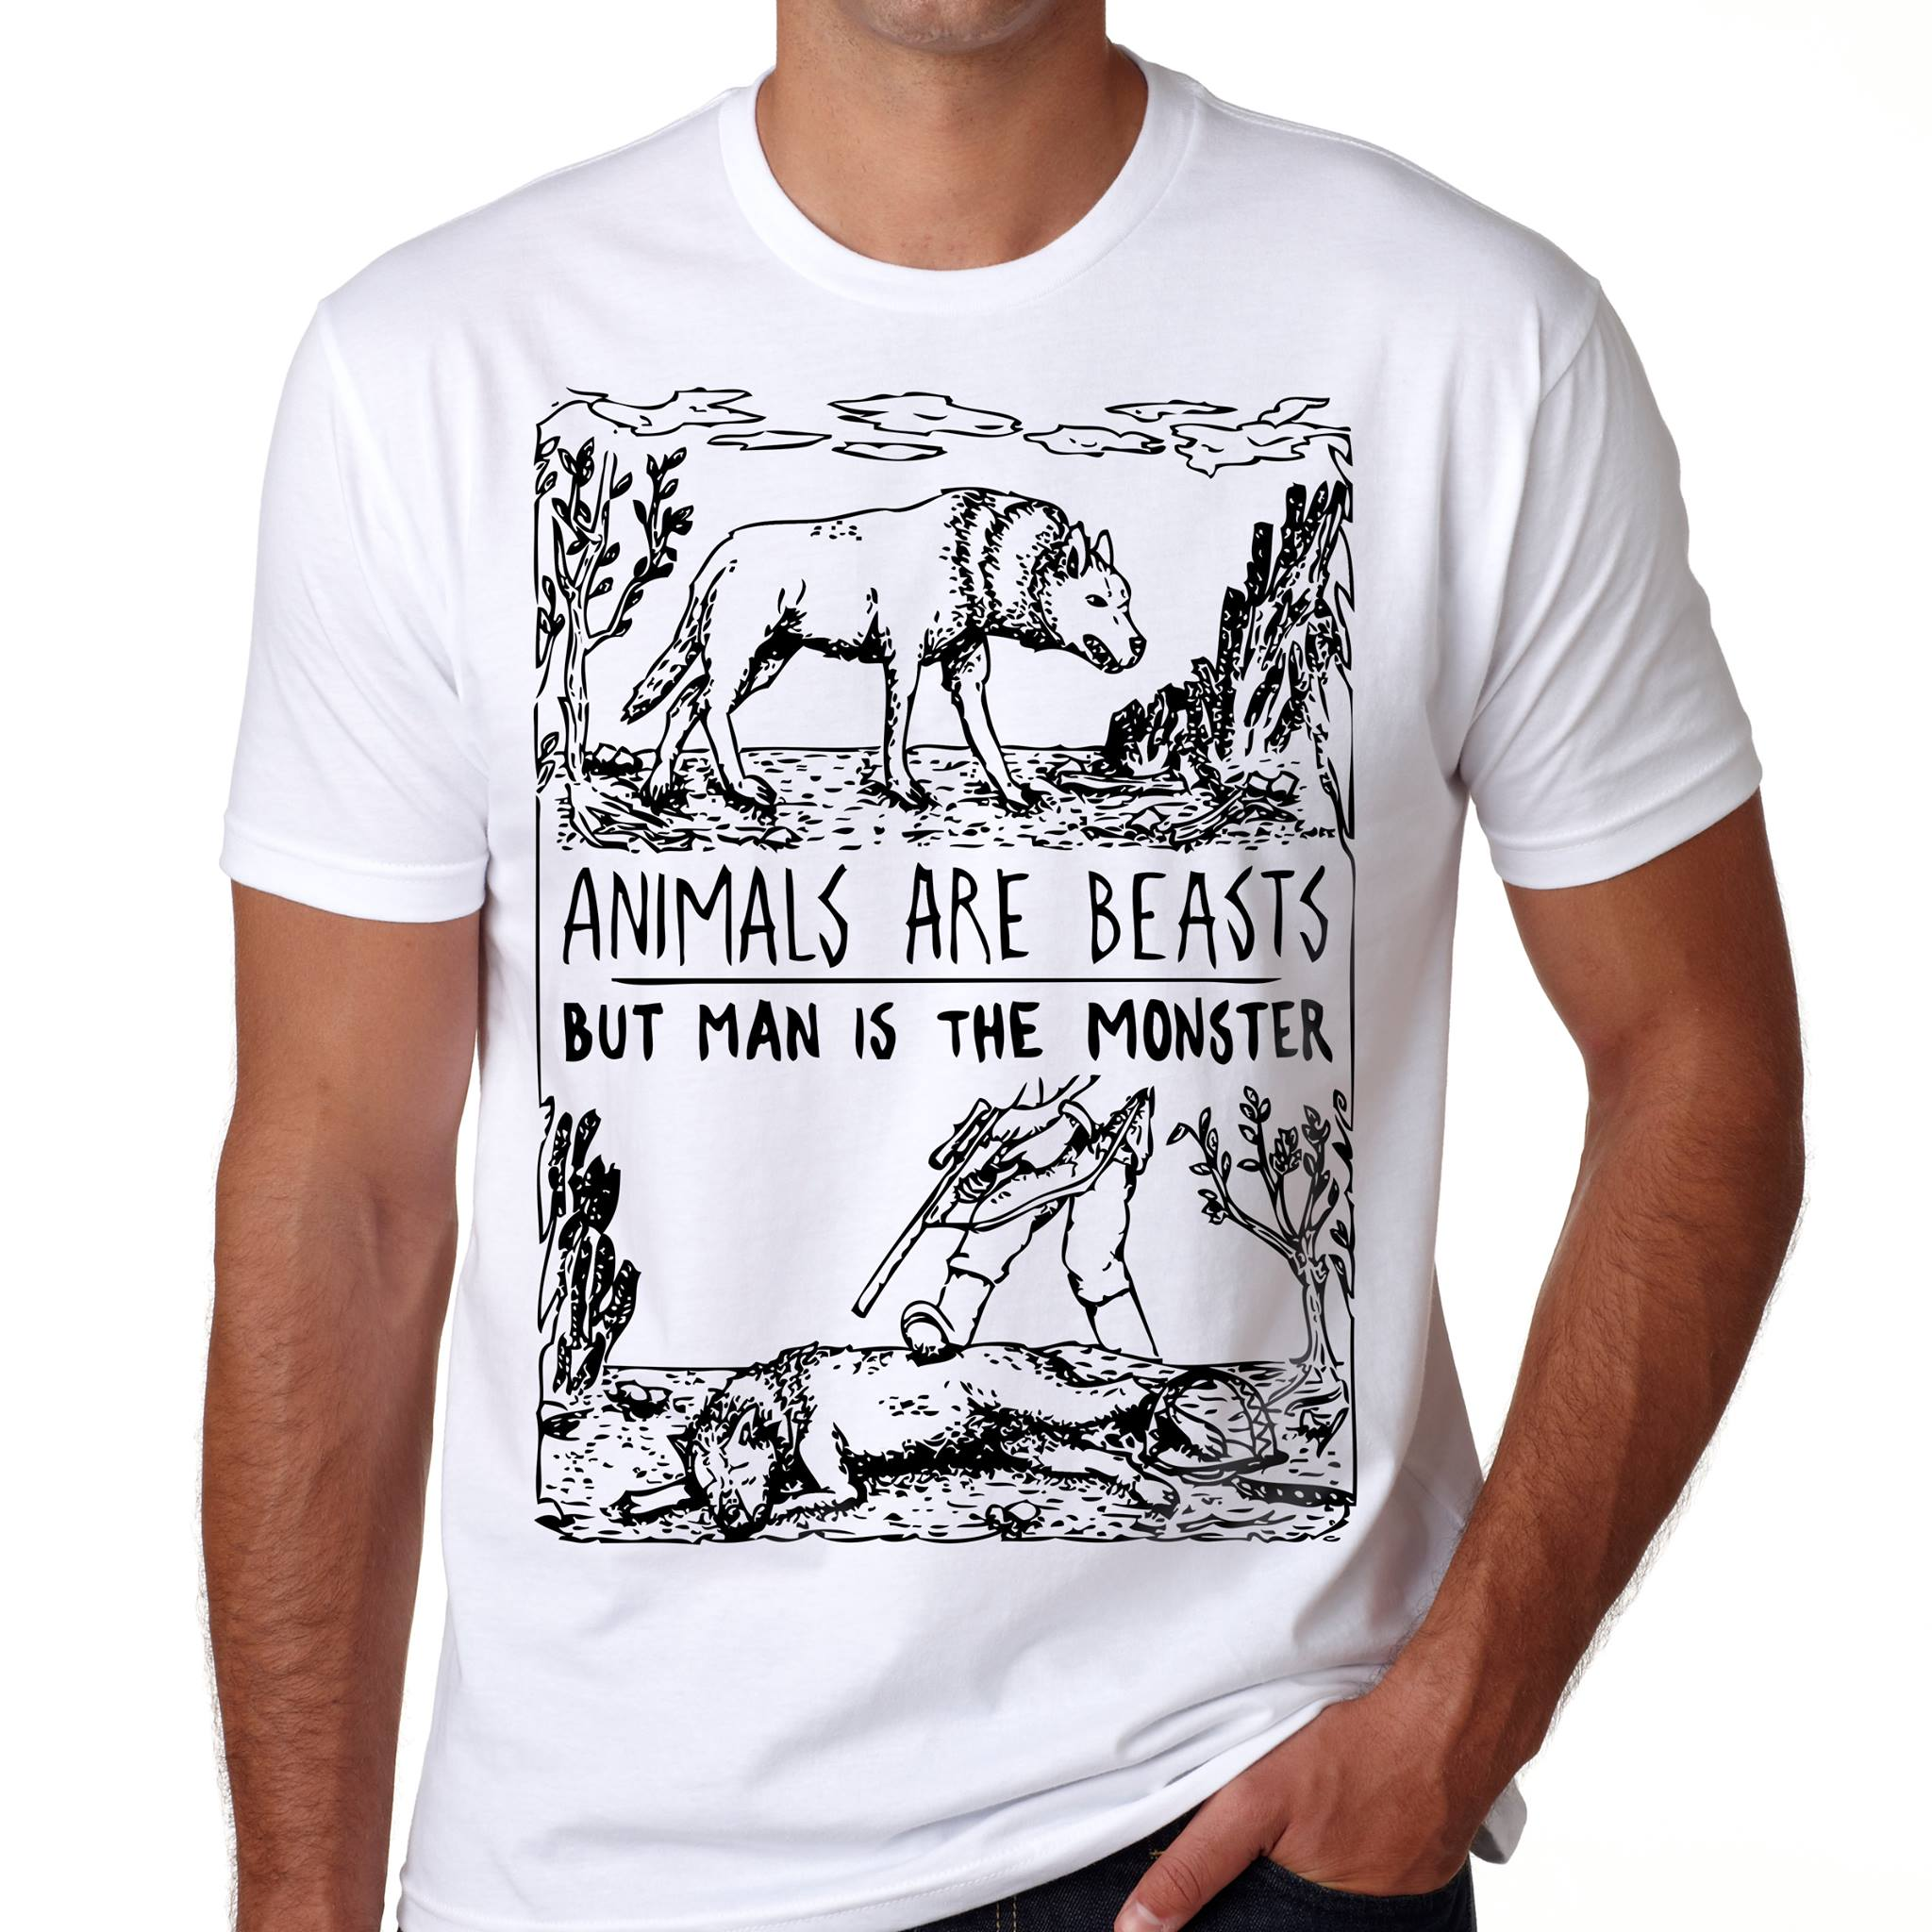 Animal Are Beasts But Man Is The Monster Shirt